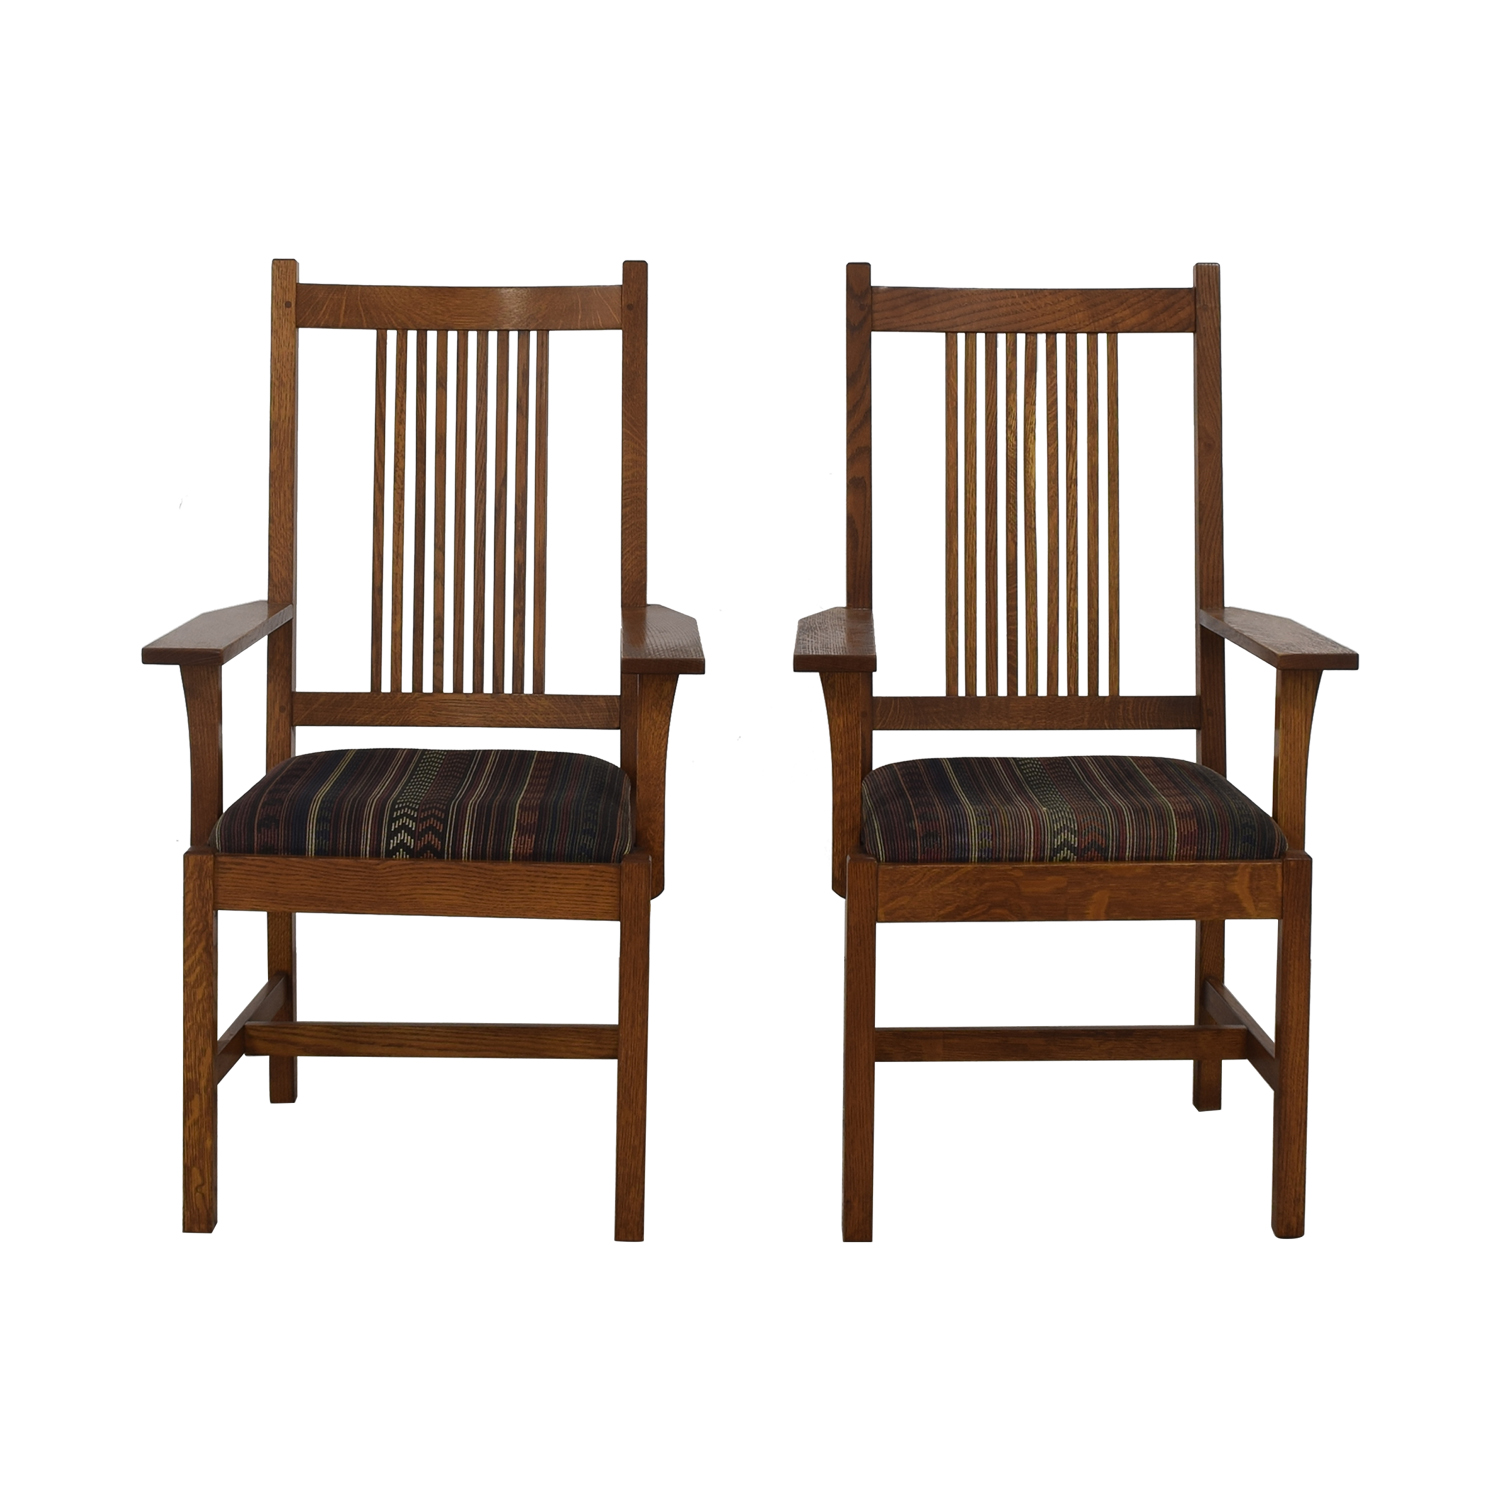 Stickley Furniture Stickley Mission Arm Chairs on sale